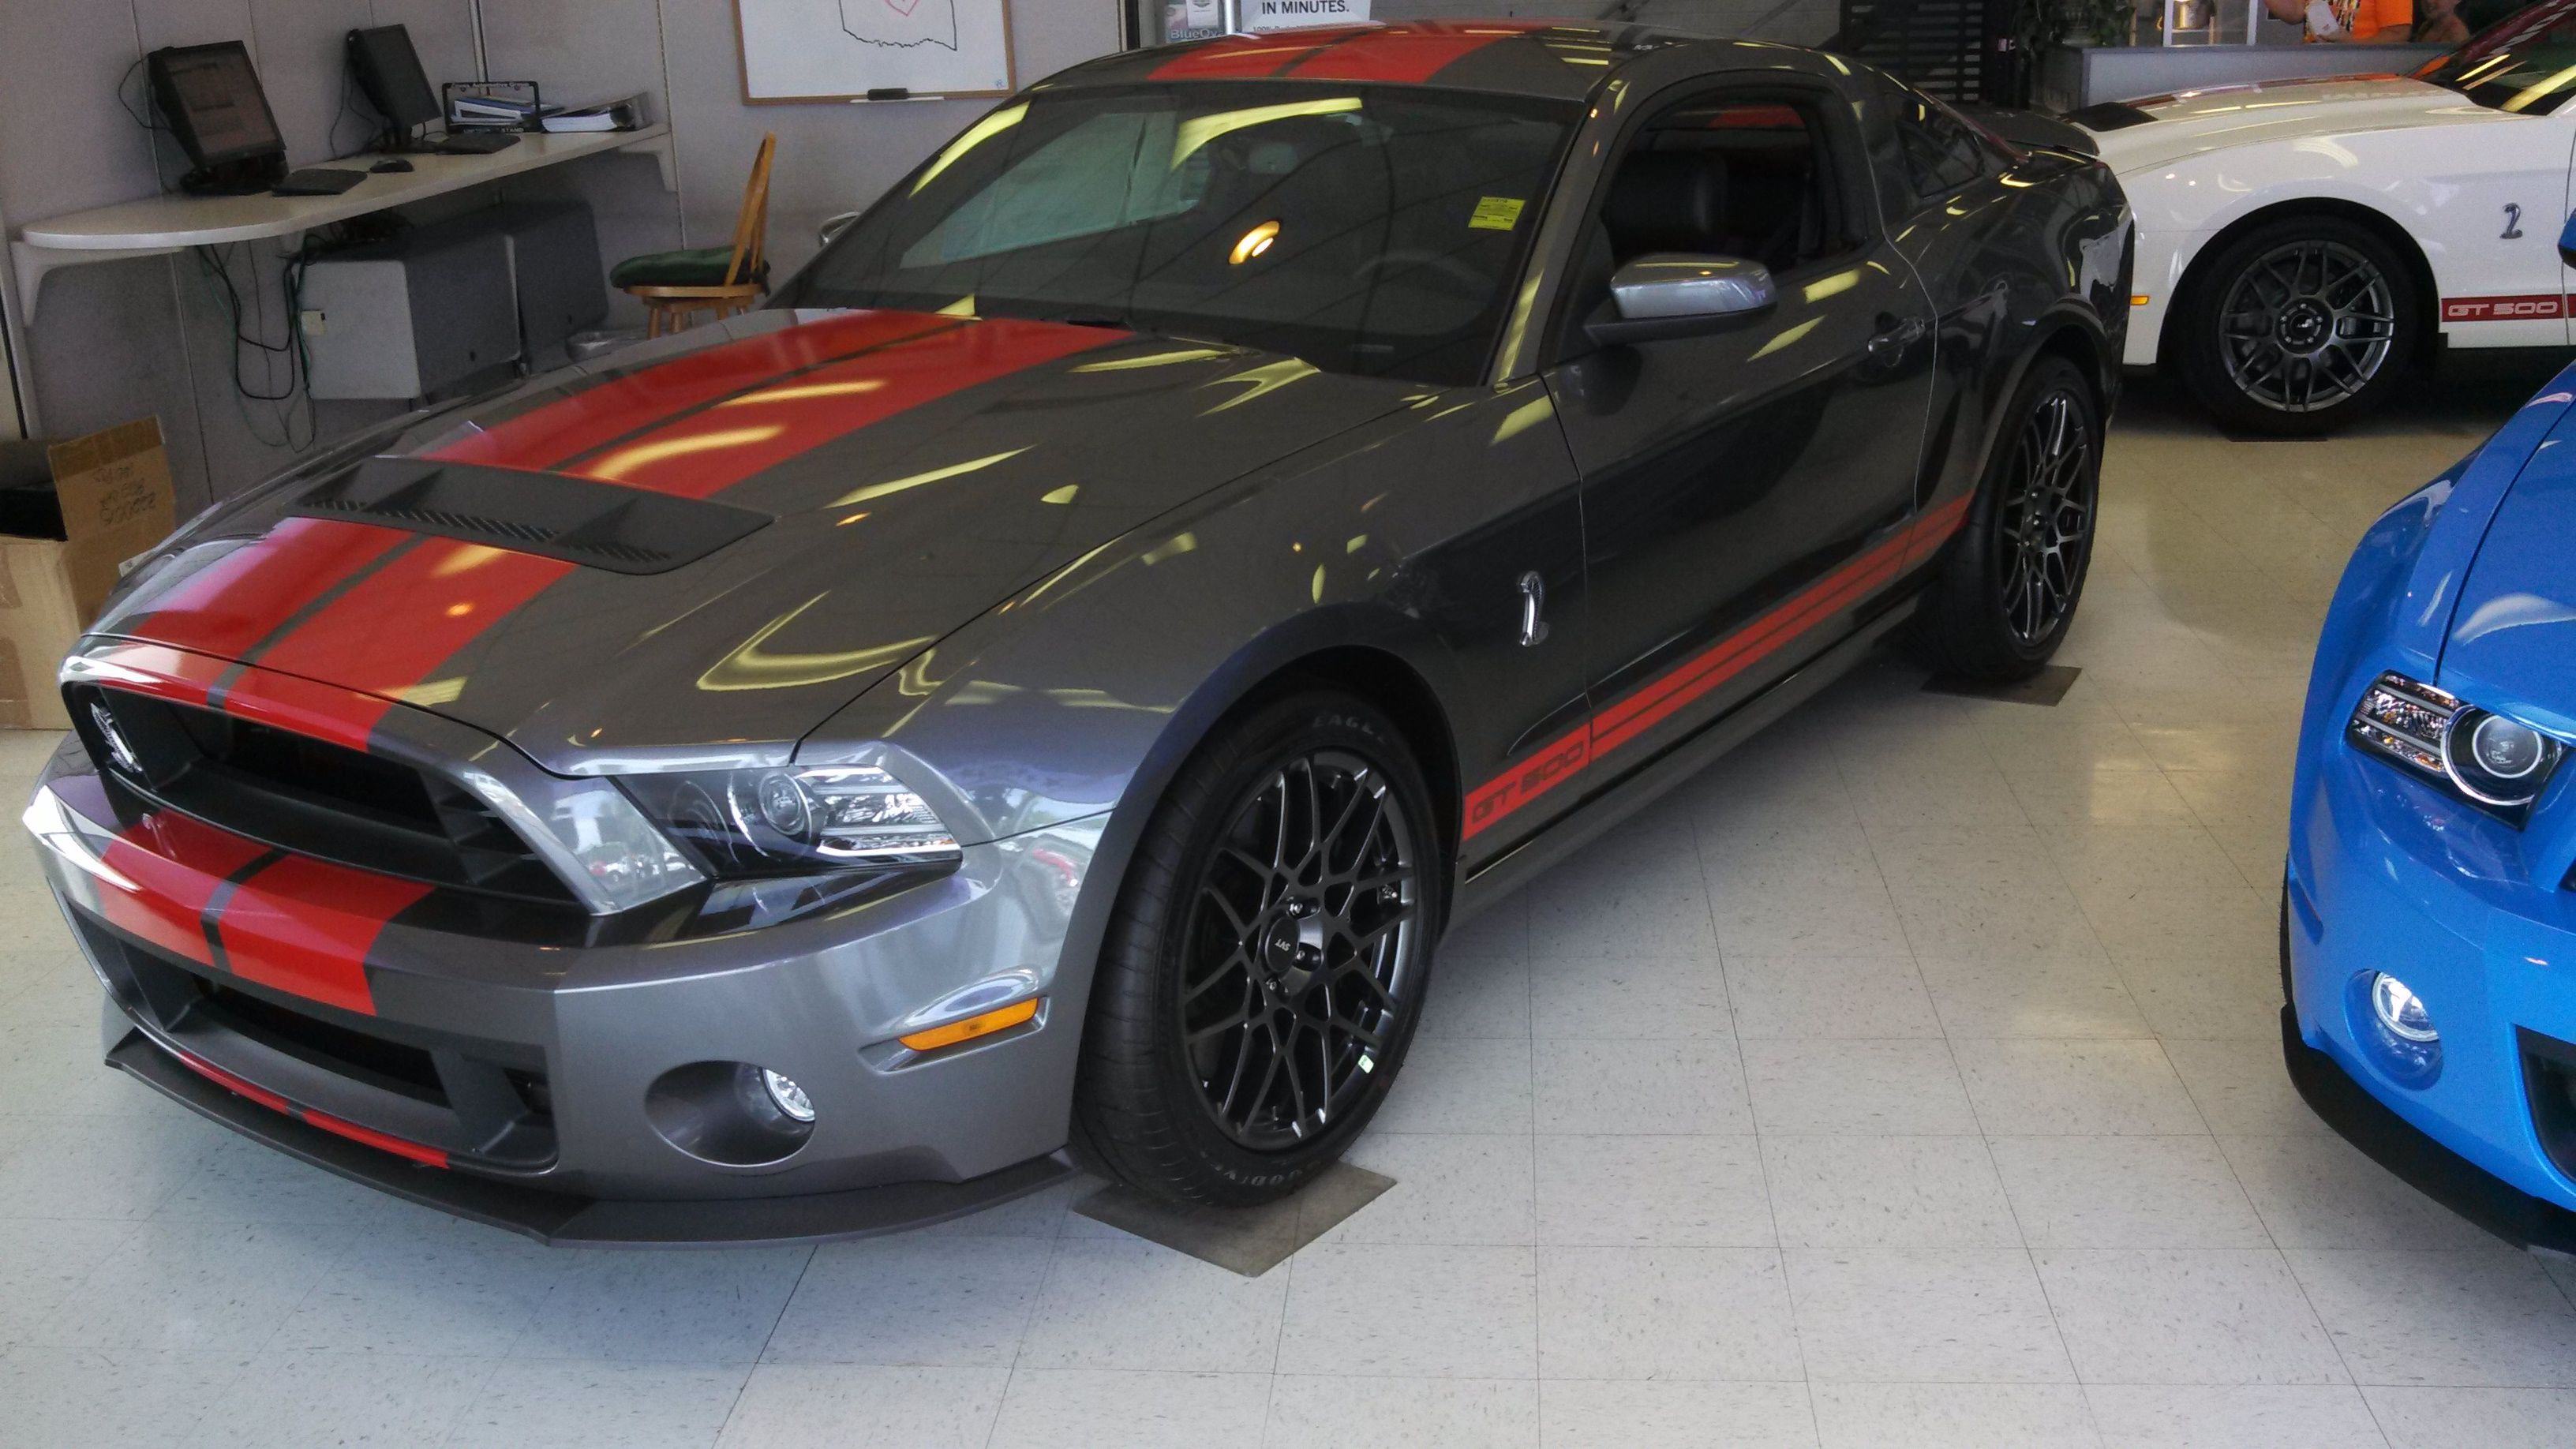 2014 ford mustang shelby gt 500 with a 5 8l v8 engine paired to a 2 3l super charger this beast is good for 662 horsepower and 631 lbs feet of torque